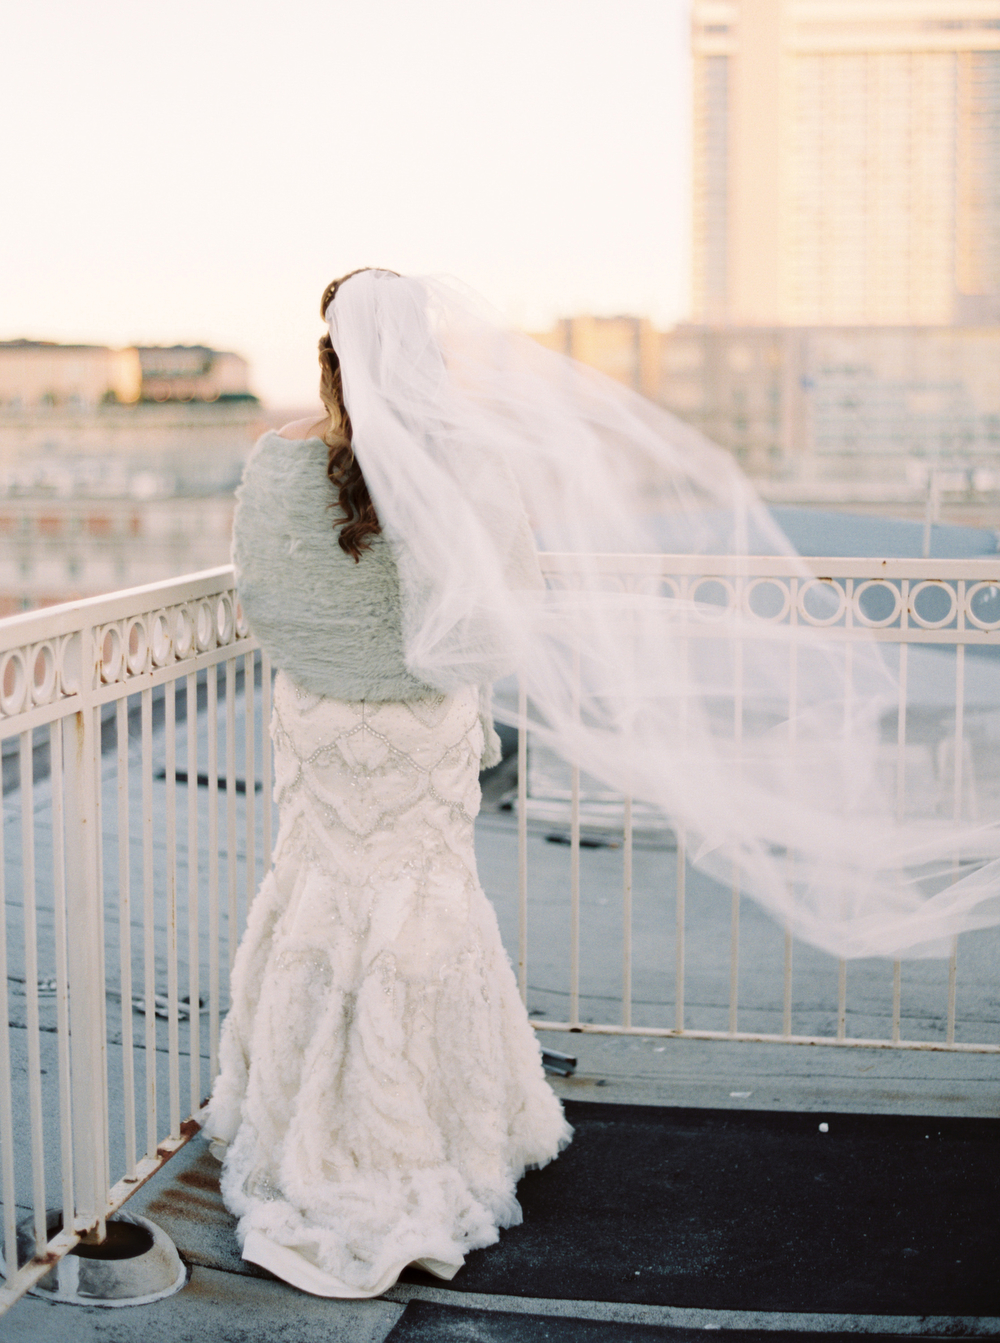 back of bride in gown wearing fur stole with long white veil flowing behind her as she looks at the city skyline